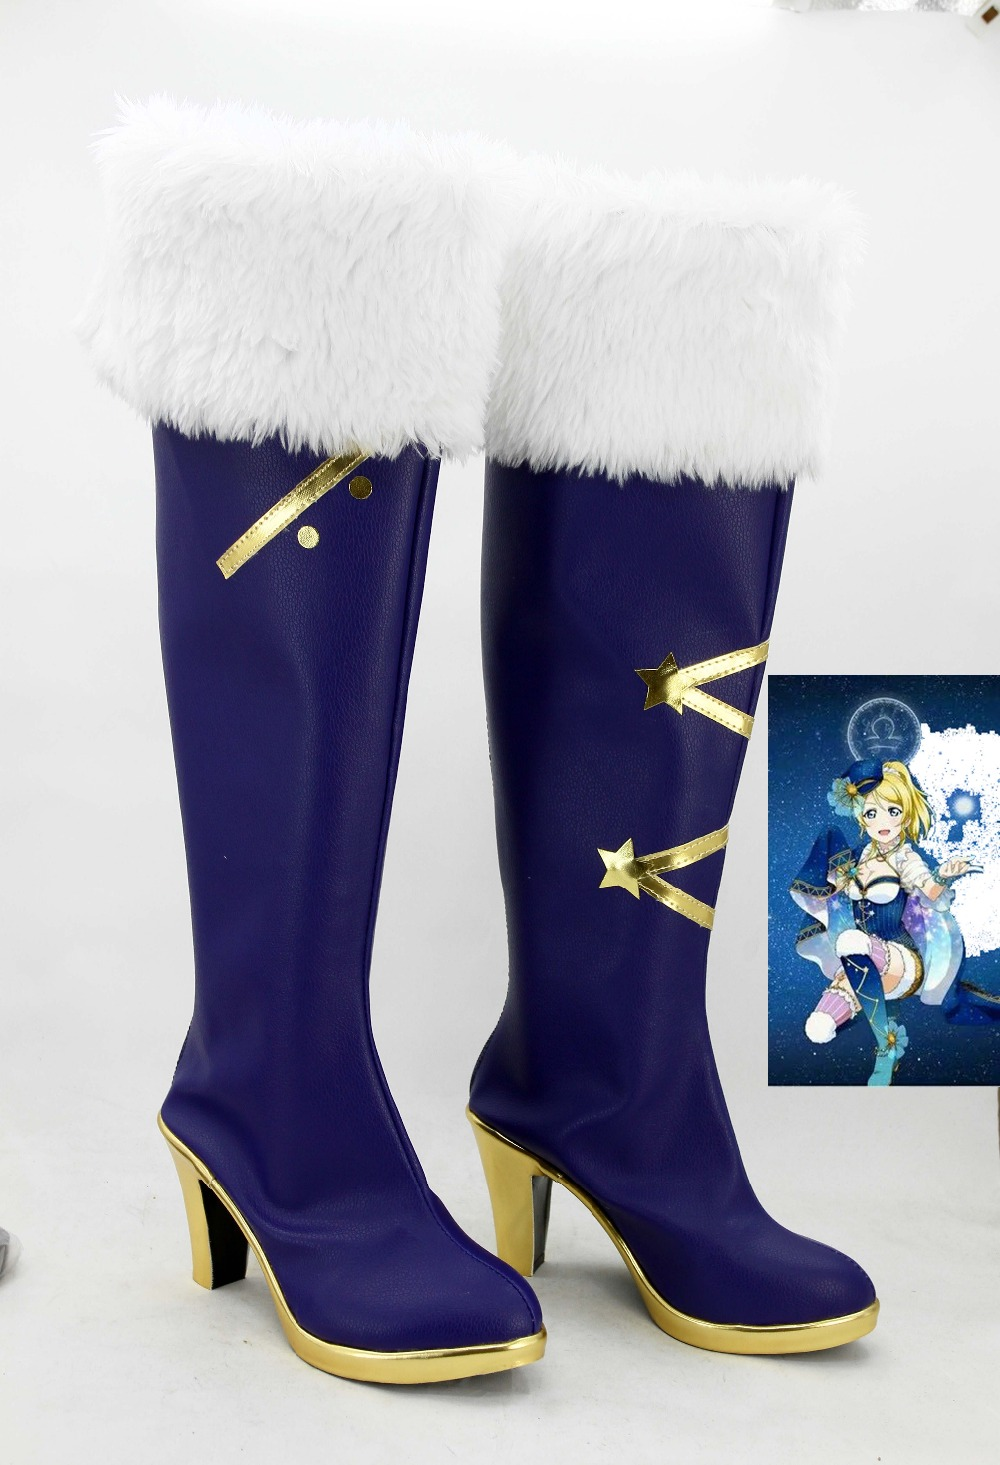 0 female costumes customize cos Lovelive! Ayase Eli Sonoda Umi COSPLAY customized cos hack shoes boots costumes